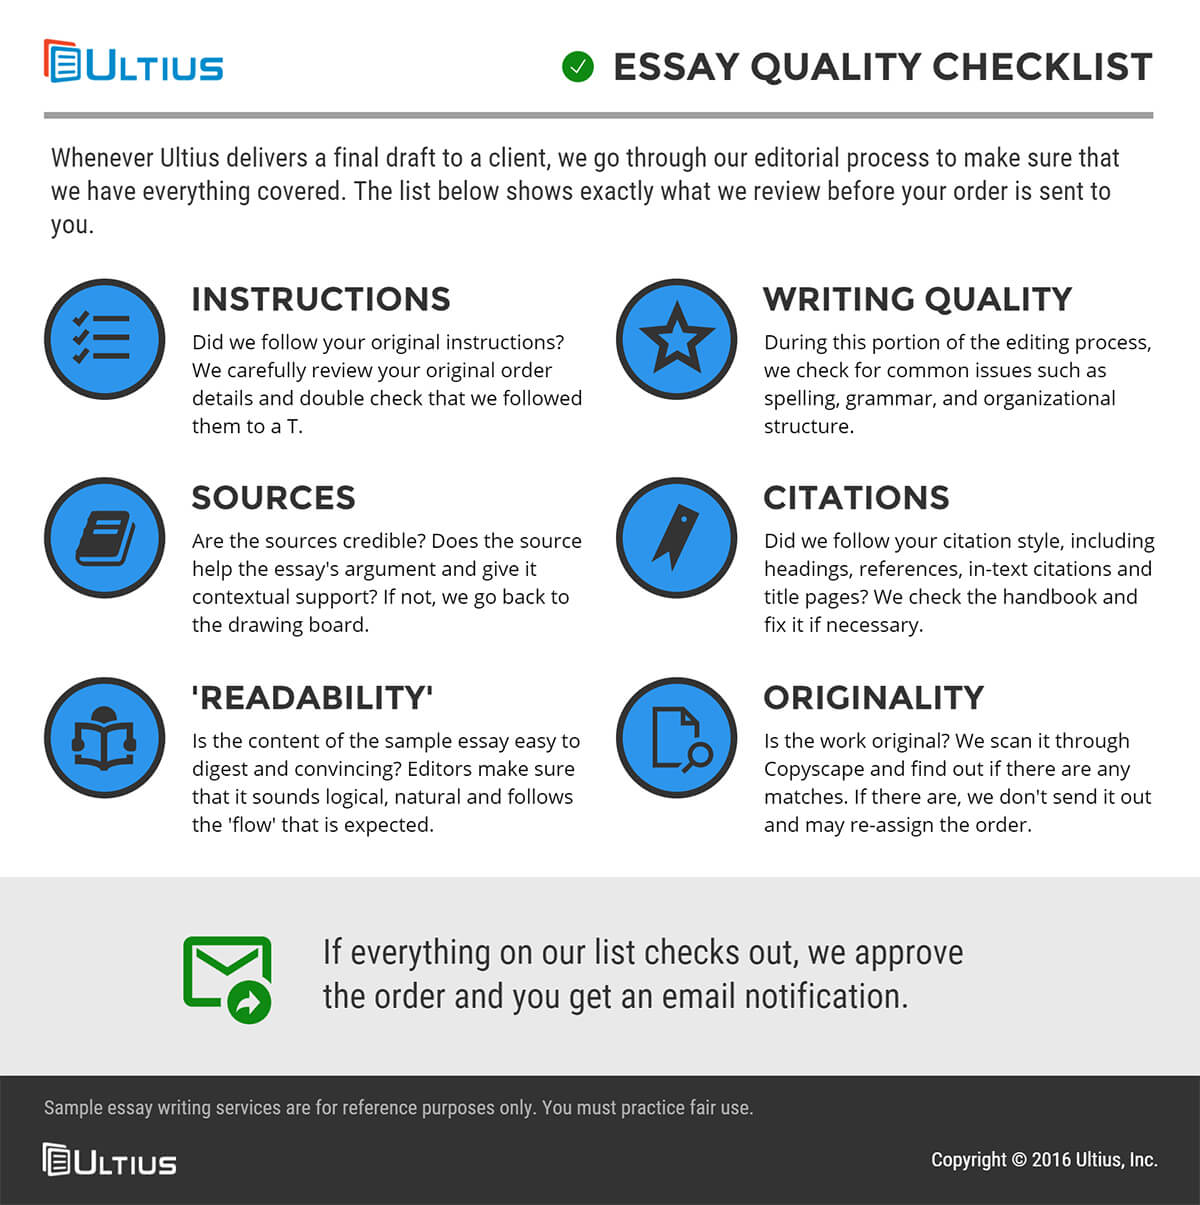 Buy Essay Online   Original  American Writers  Ultius Purchased Essay Quality Checklist